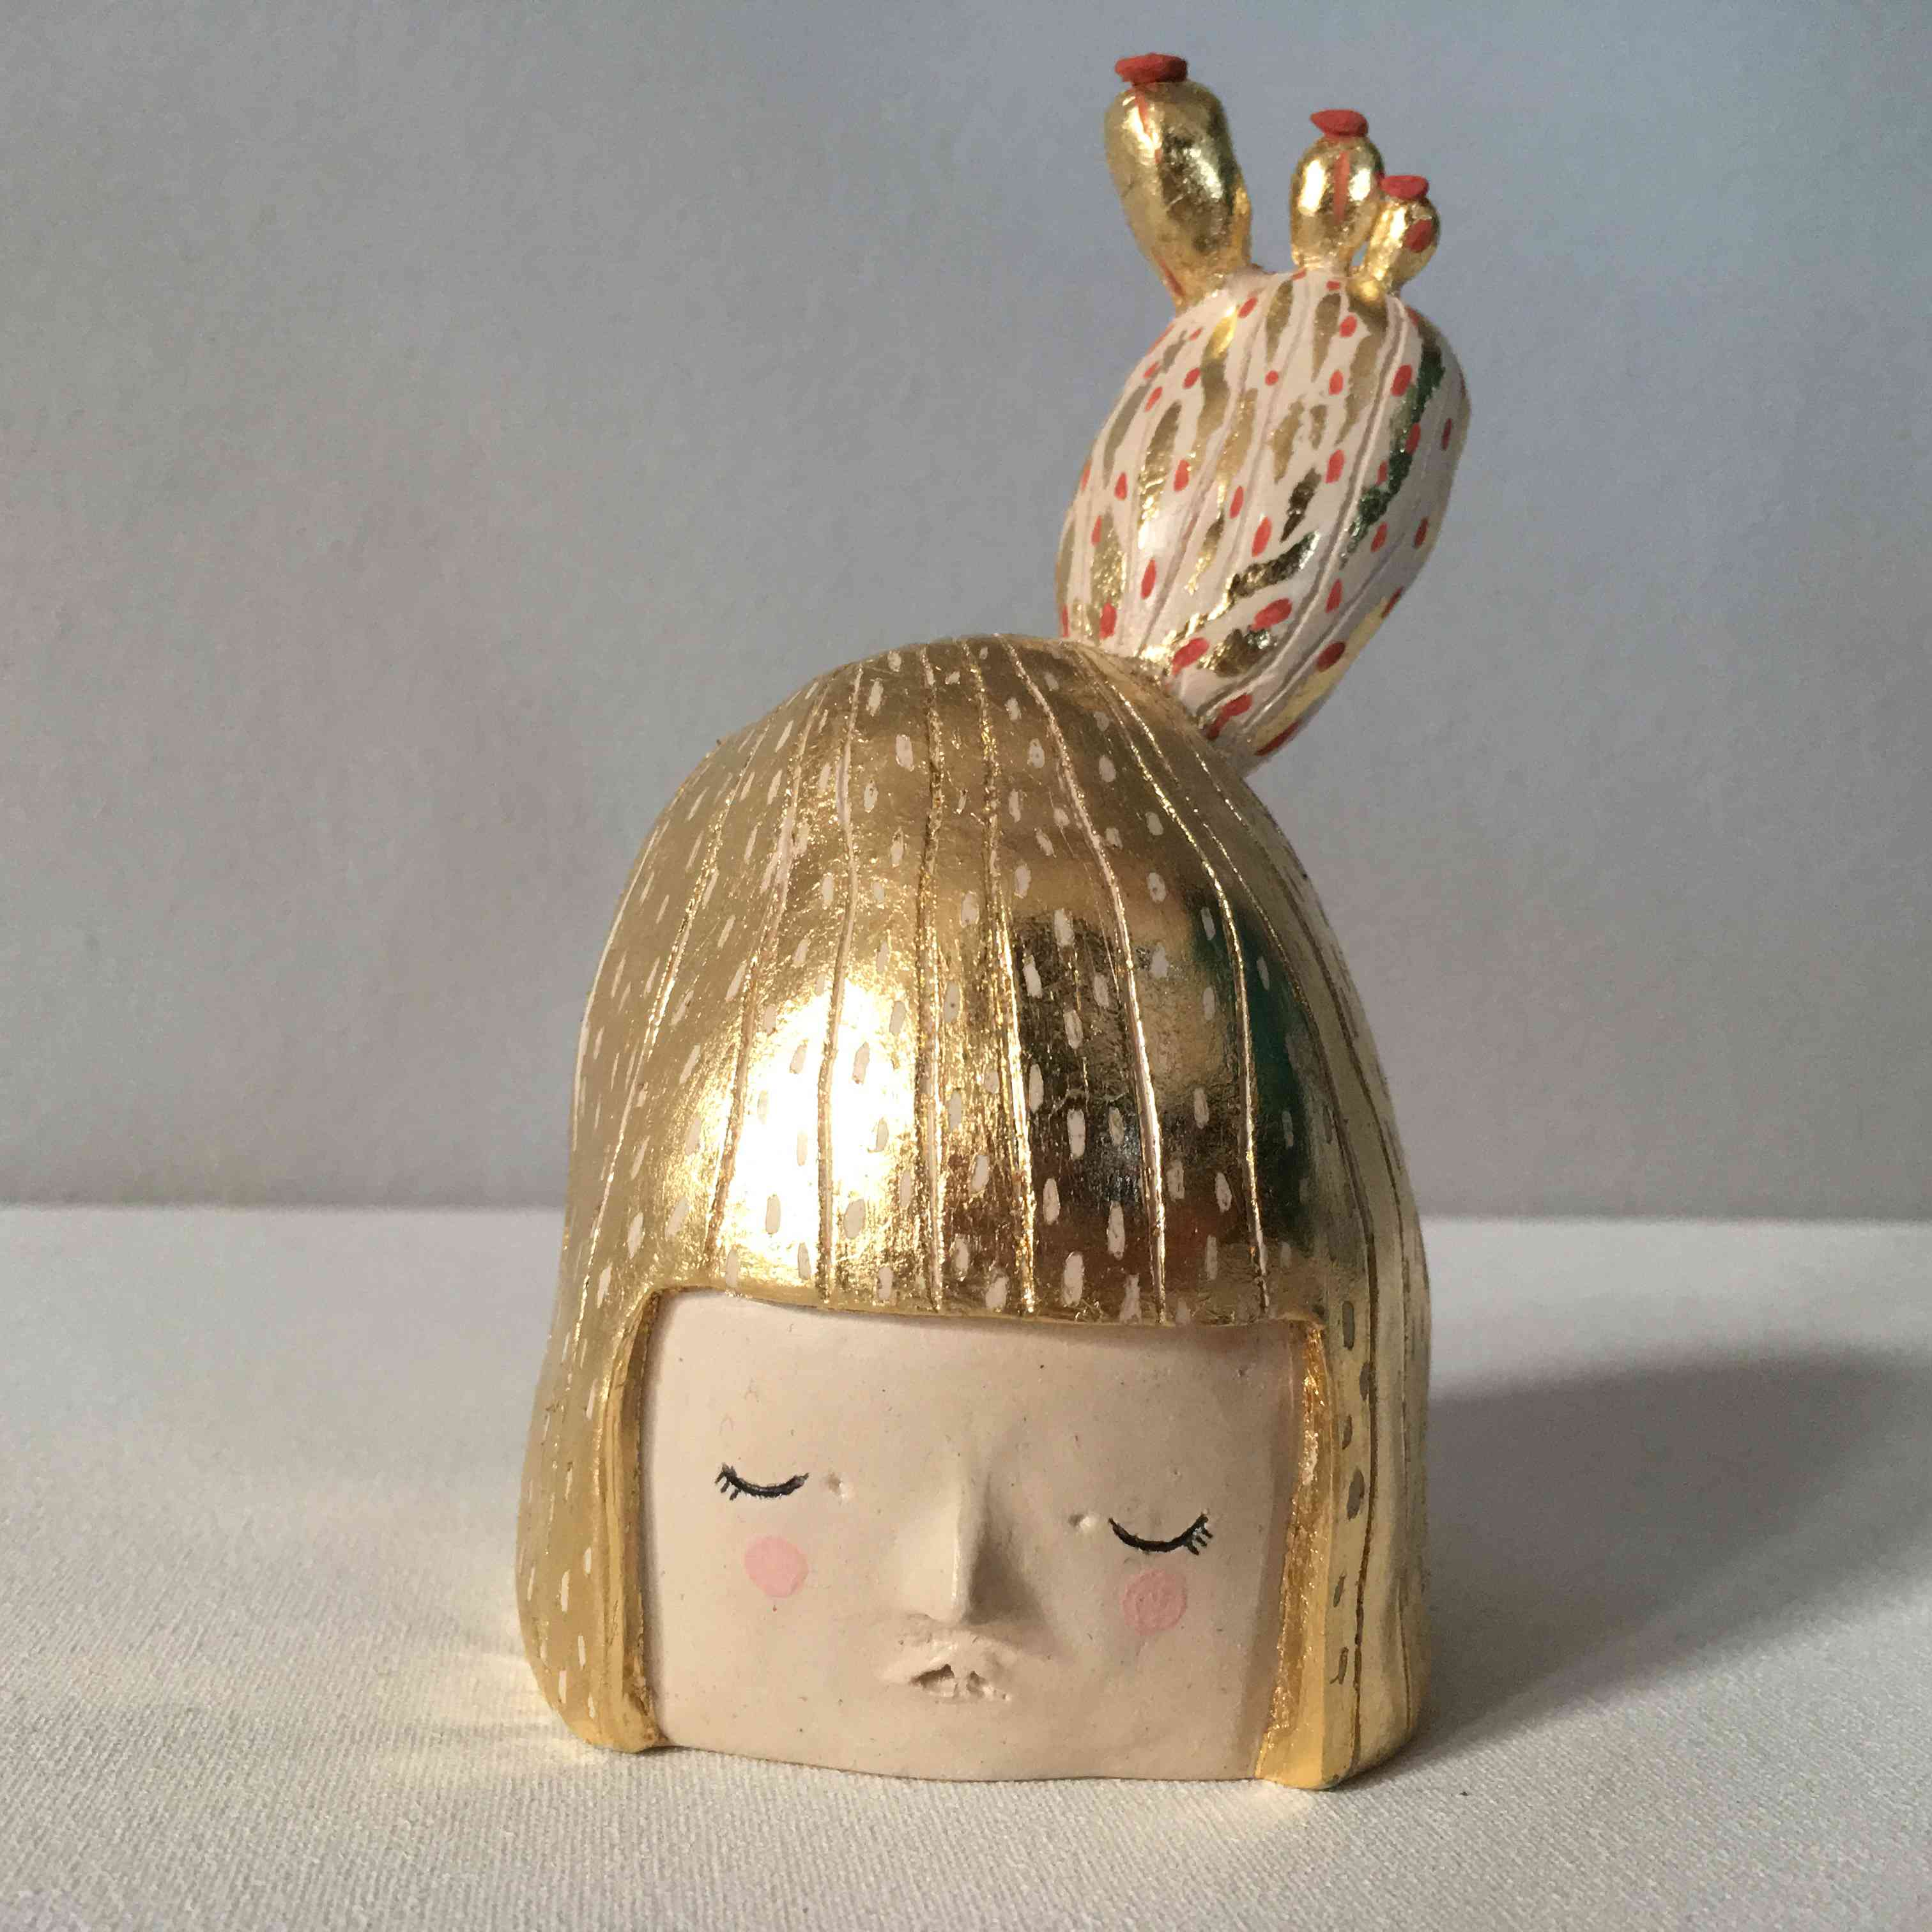 seforapons-ceramic-sculpture-goldleaf-symbiosis-cactusgirl-3